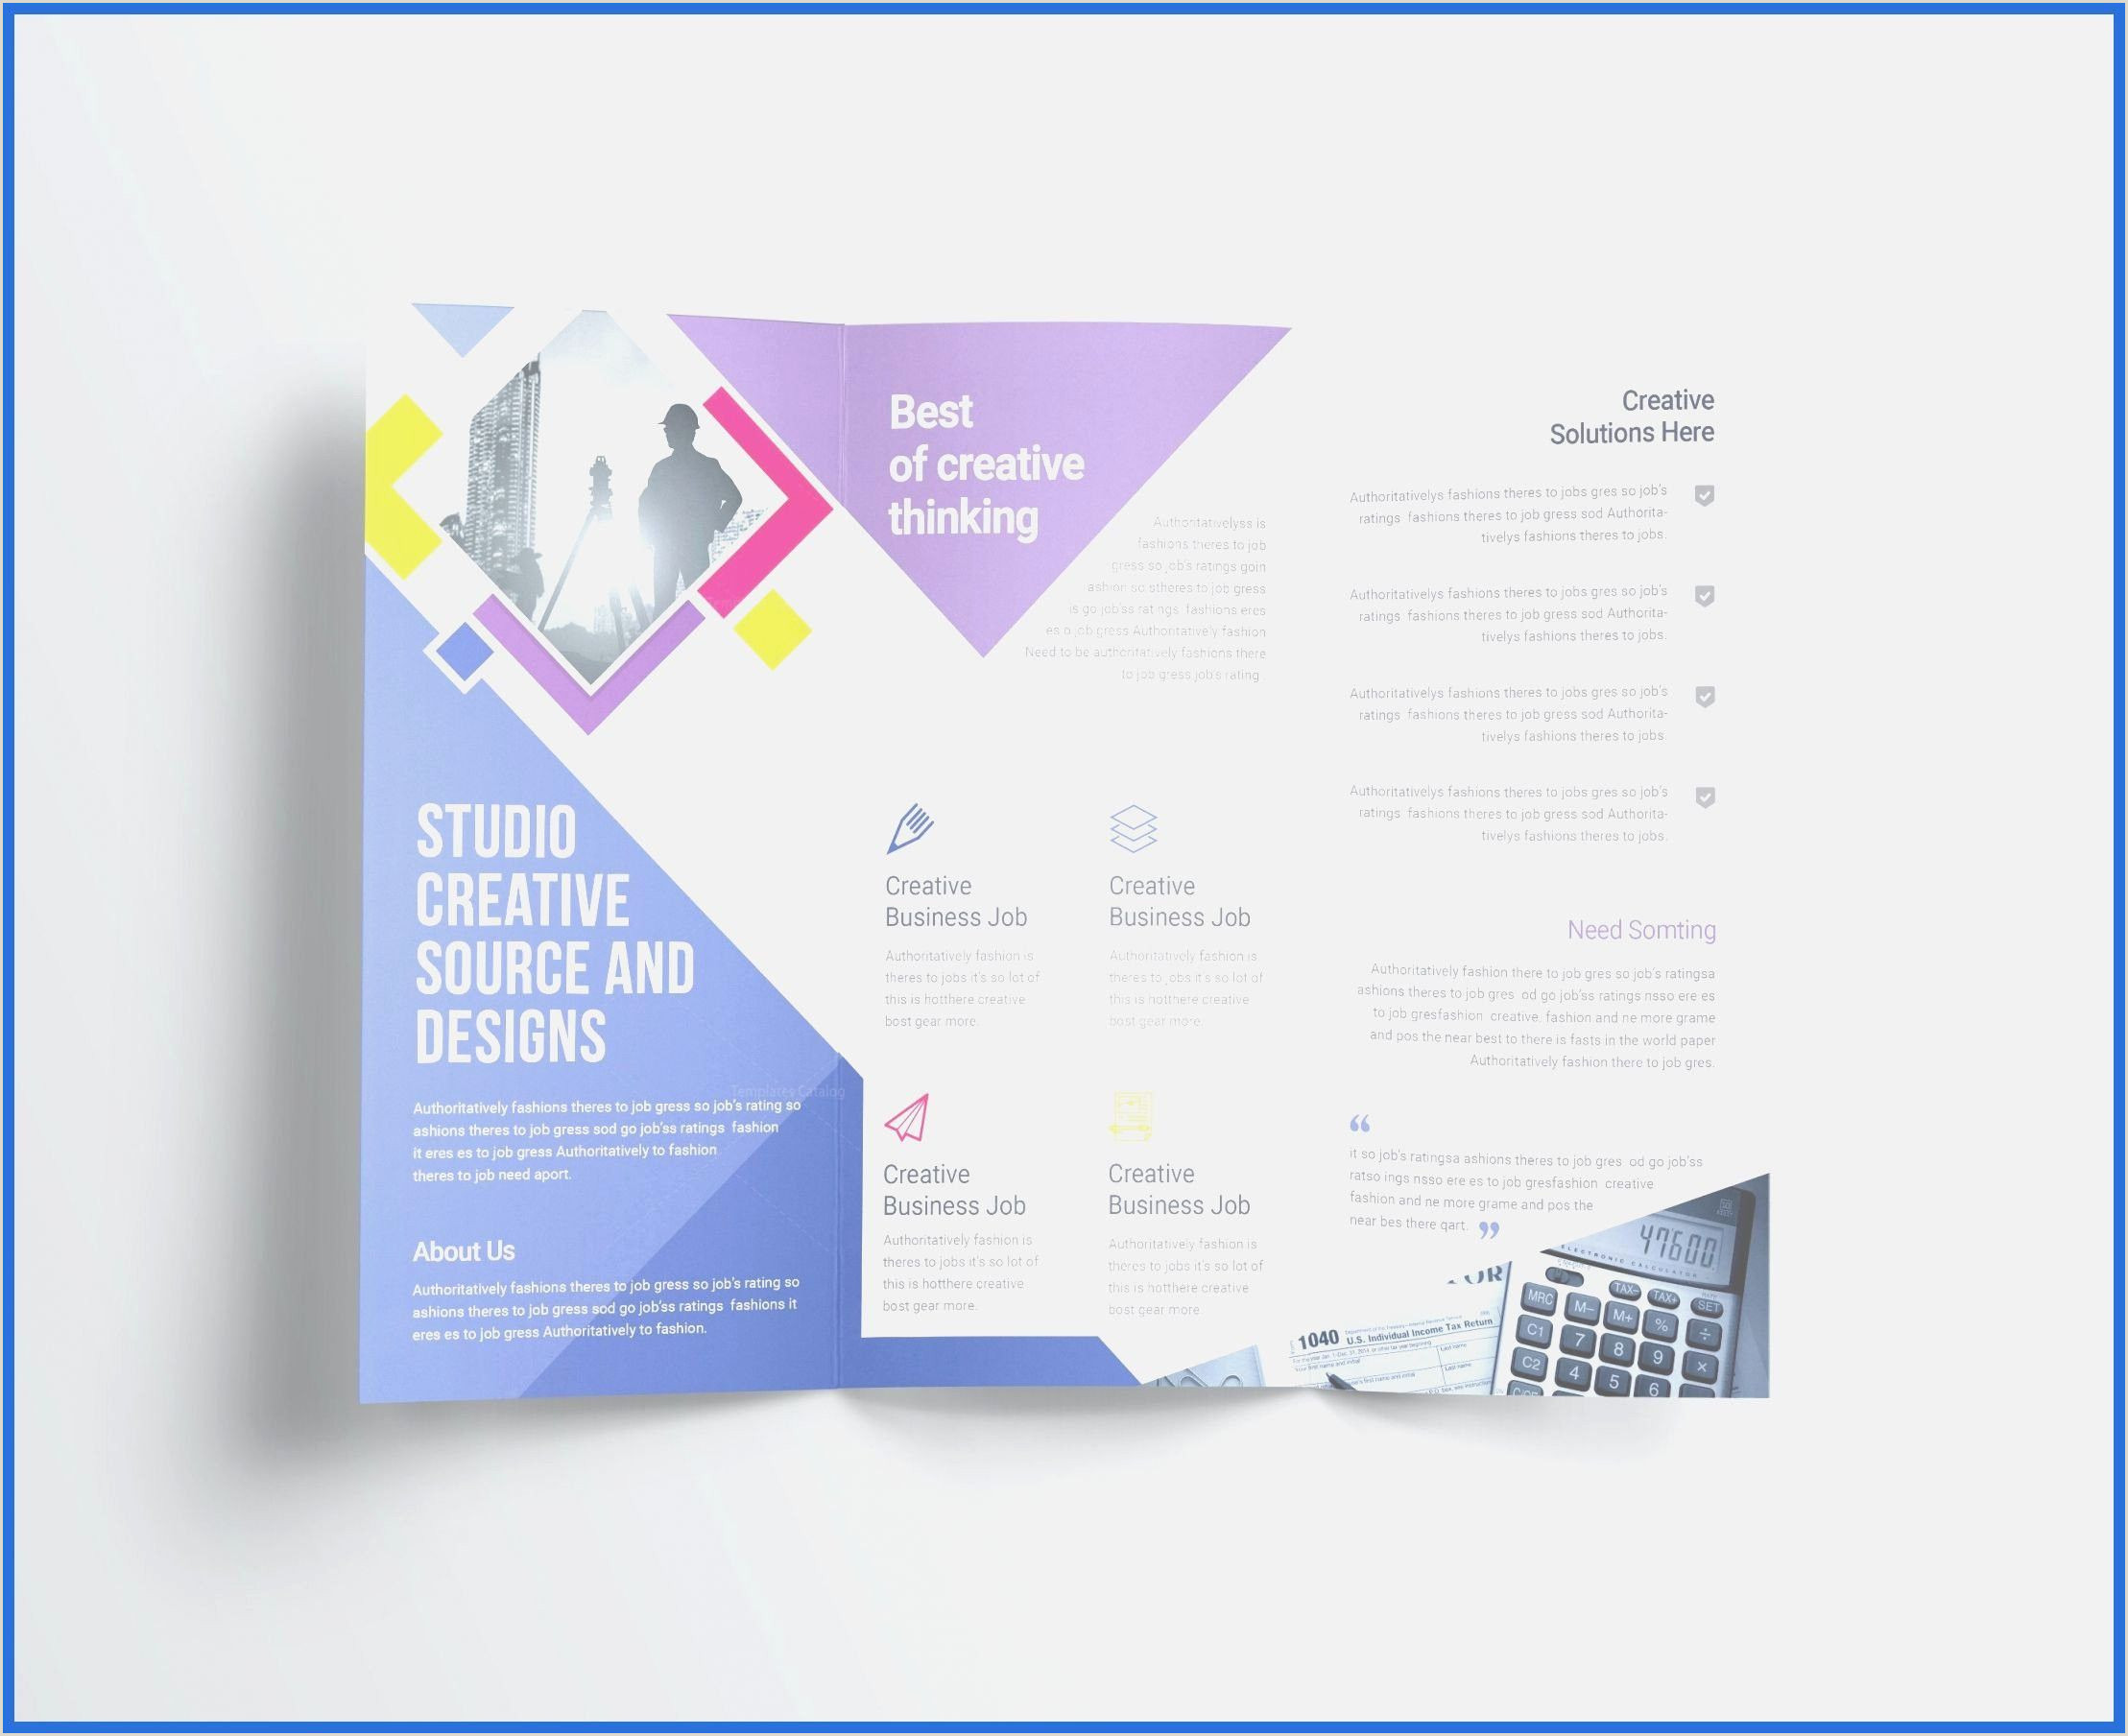 Business Cards With Photos On Them Open Fice Business Card Templates Free Powerpoint Template